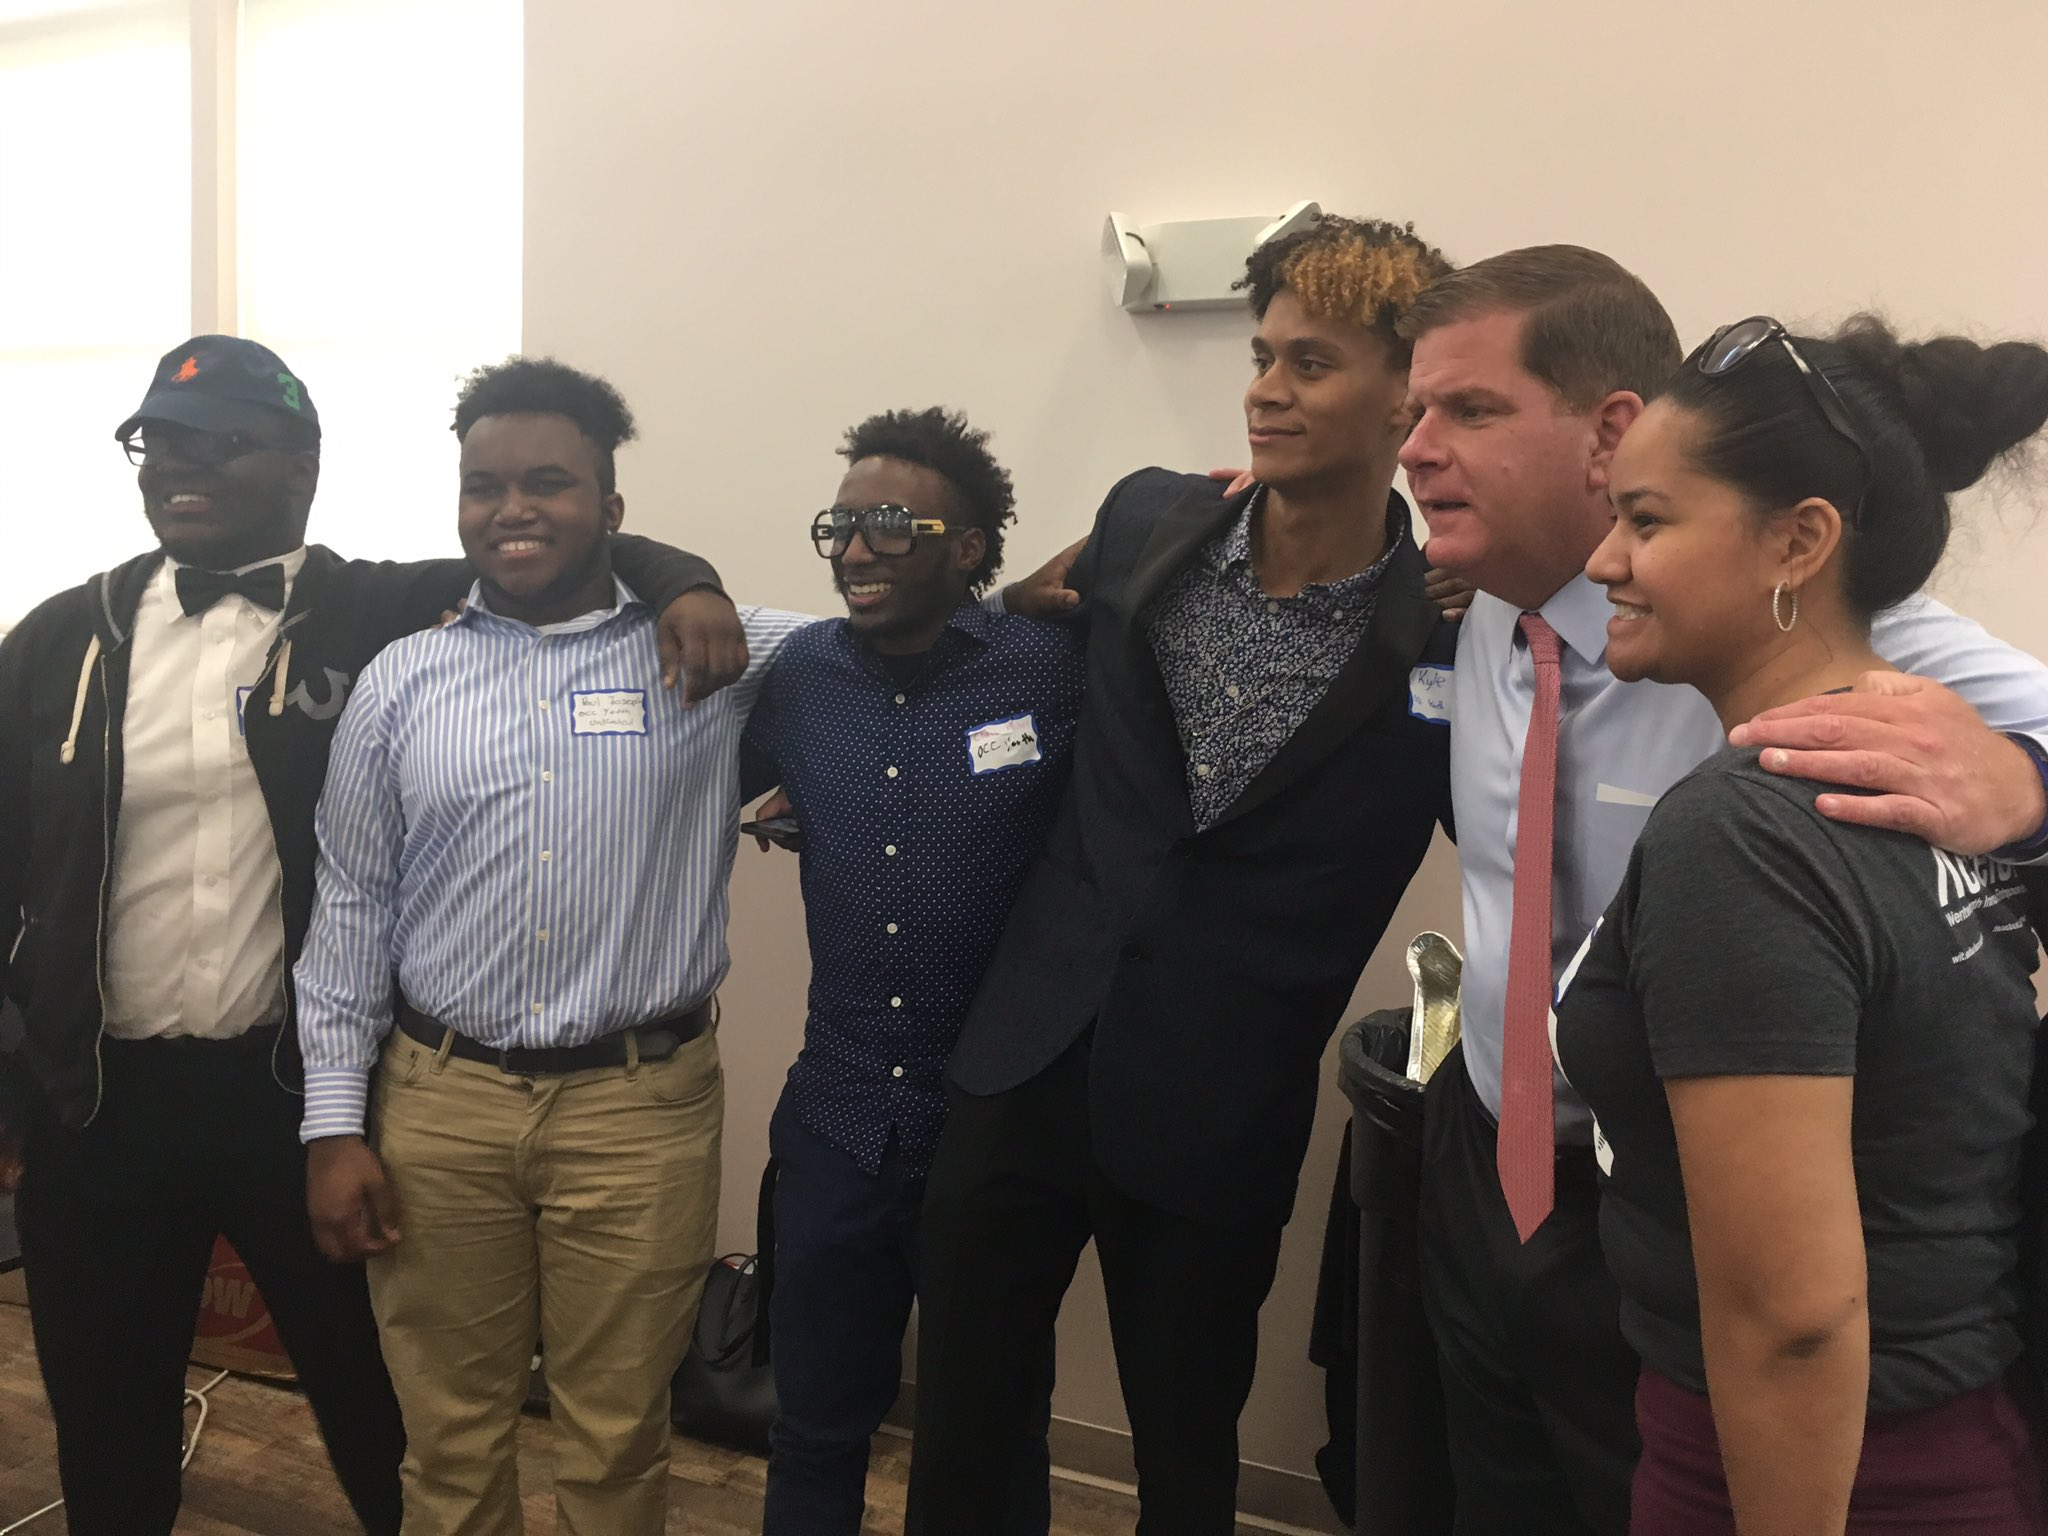 Team effort to get the @WITXLR8 @OccYouthUN team w/ @marty_walsh #min99 https://t.co/63gSbt8osL